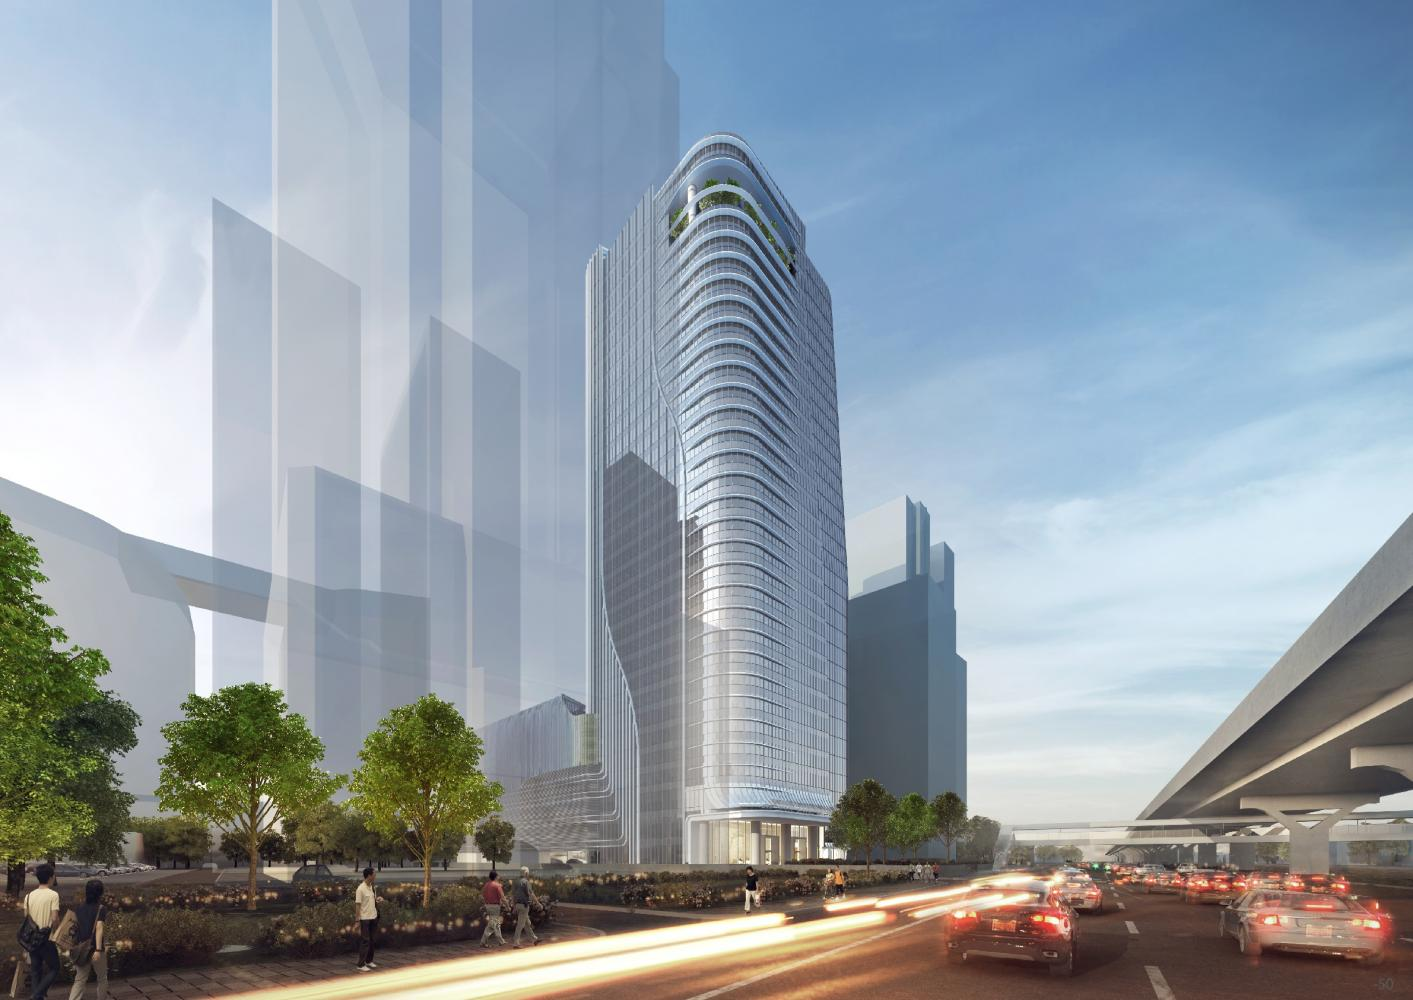 Singha Estate's office tower on Vibhavadi Rangsit Road in Chatuchak district is to be completed next year.